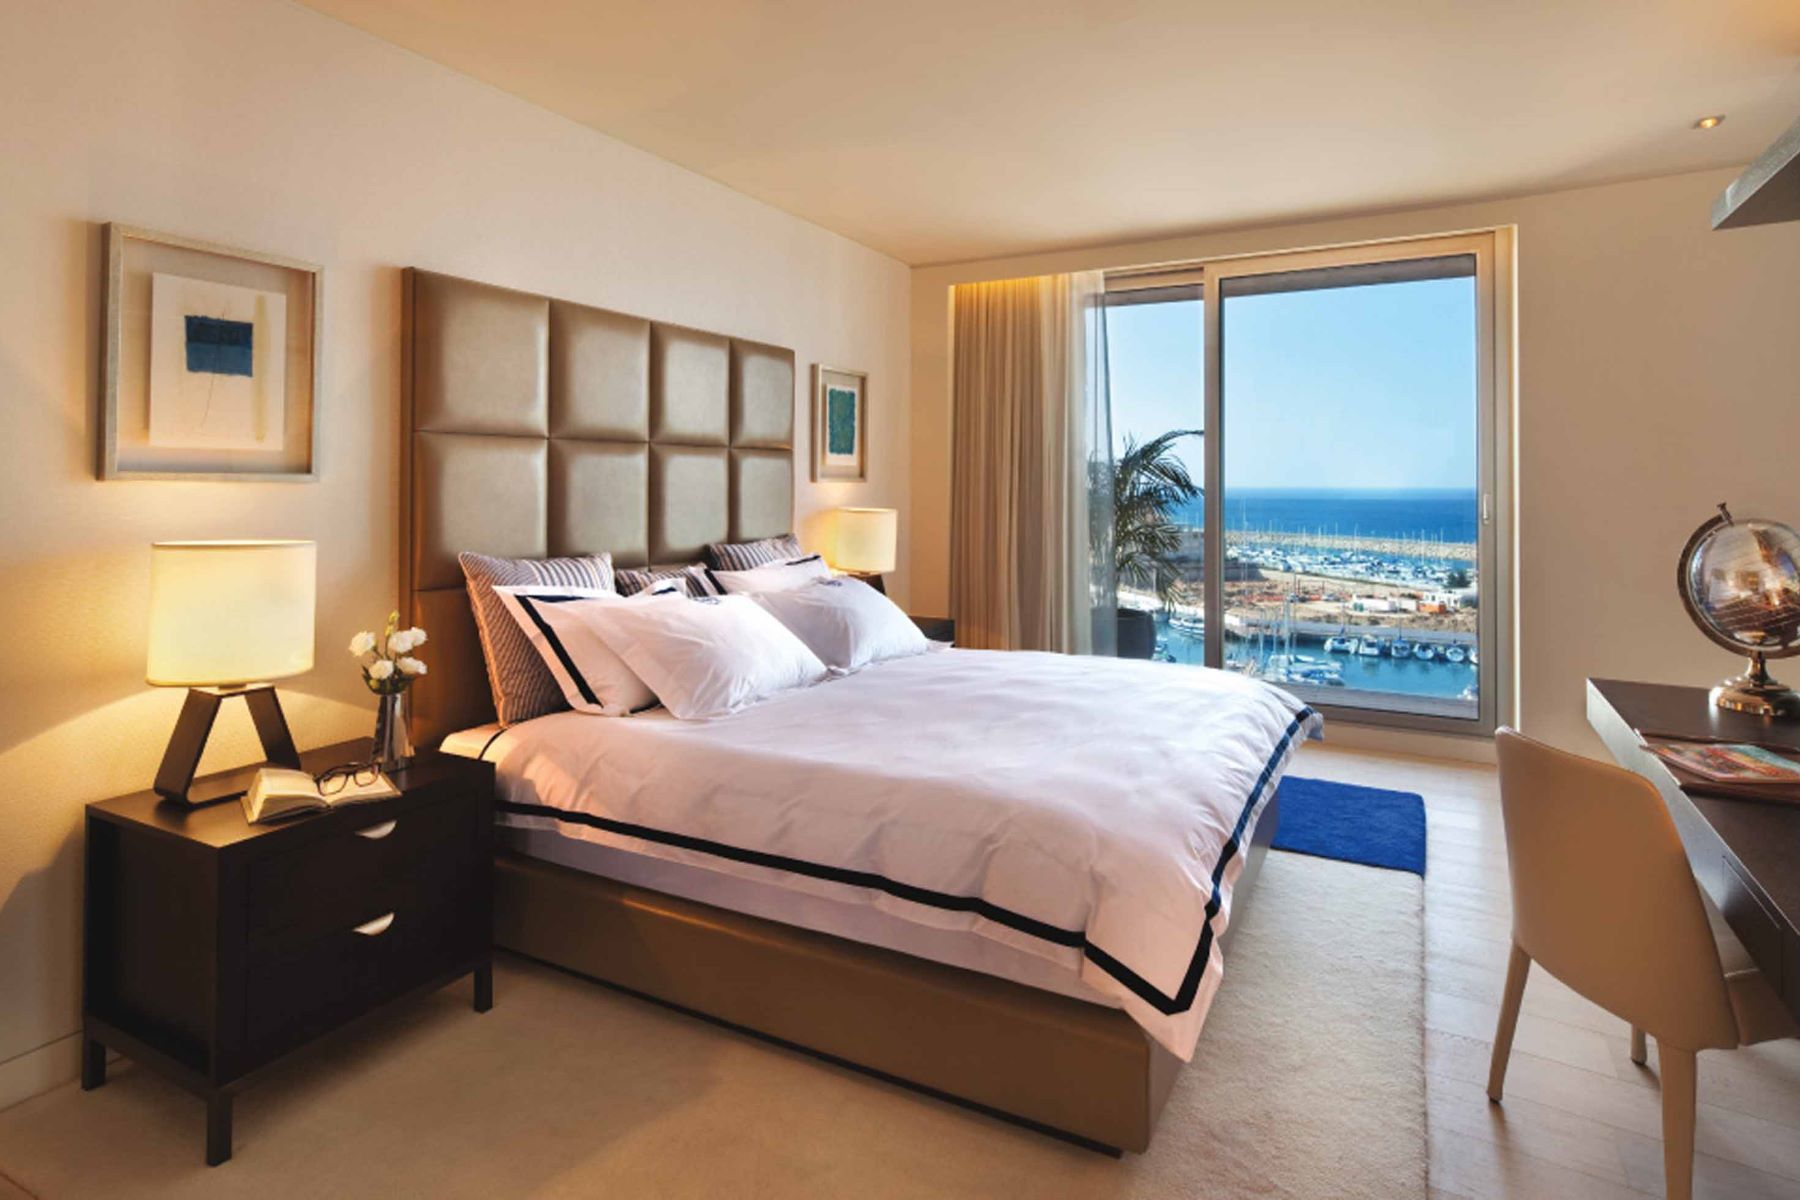 Additional photo for property listing at Ritz-Carlton Residences Herzliya Penthouse Herzliya, Israel Israel